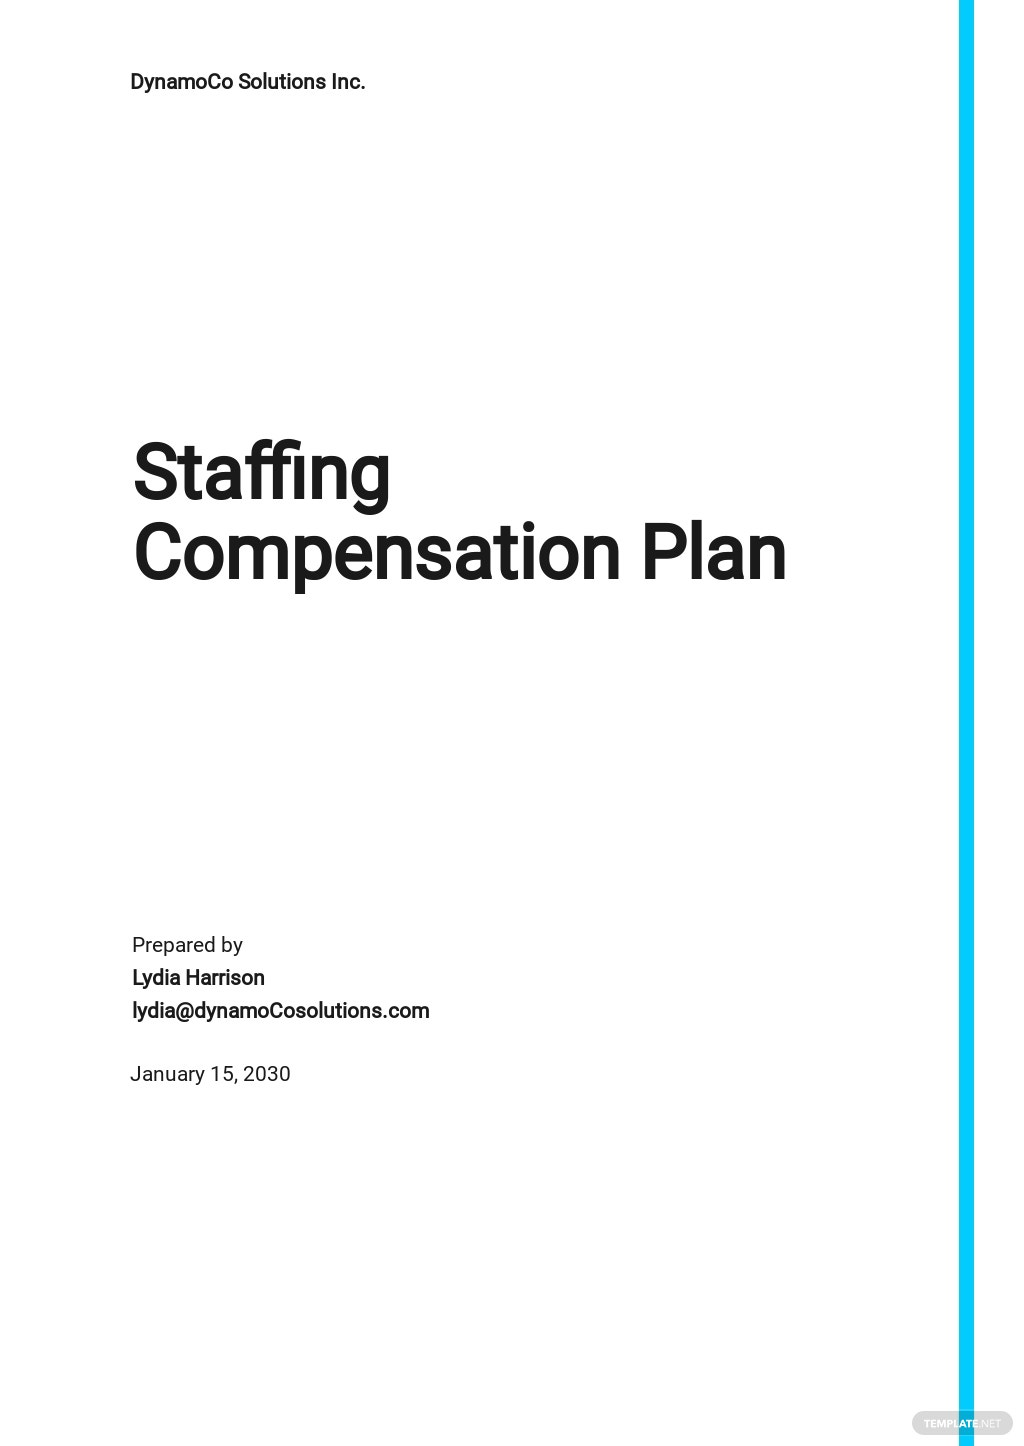 Staffing Compensation Plan Template